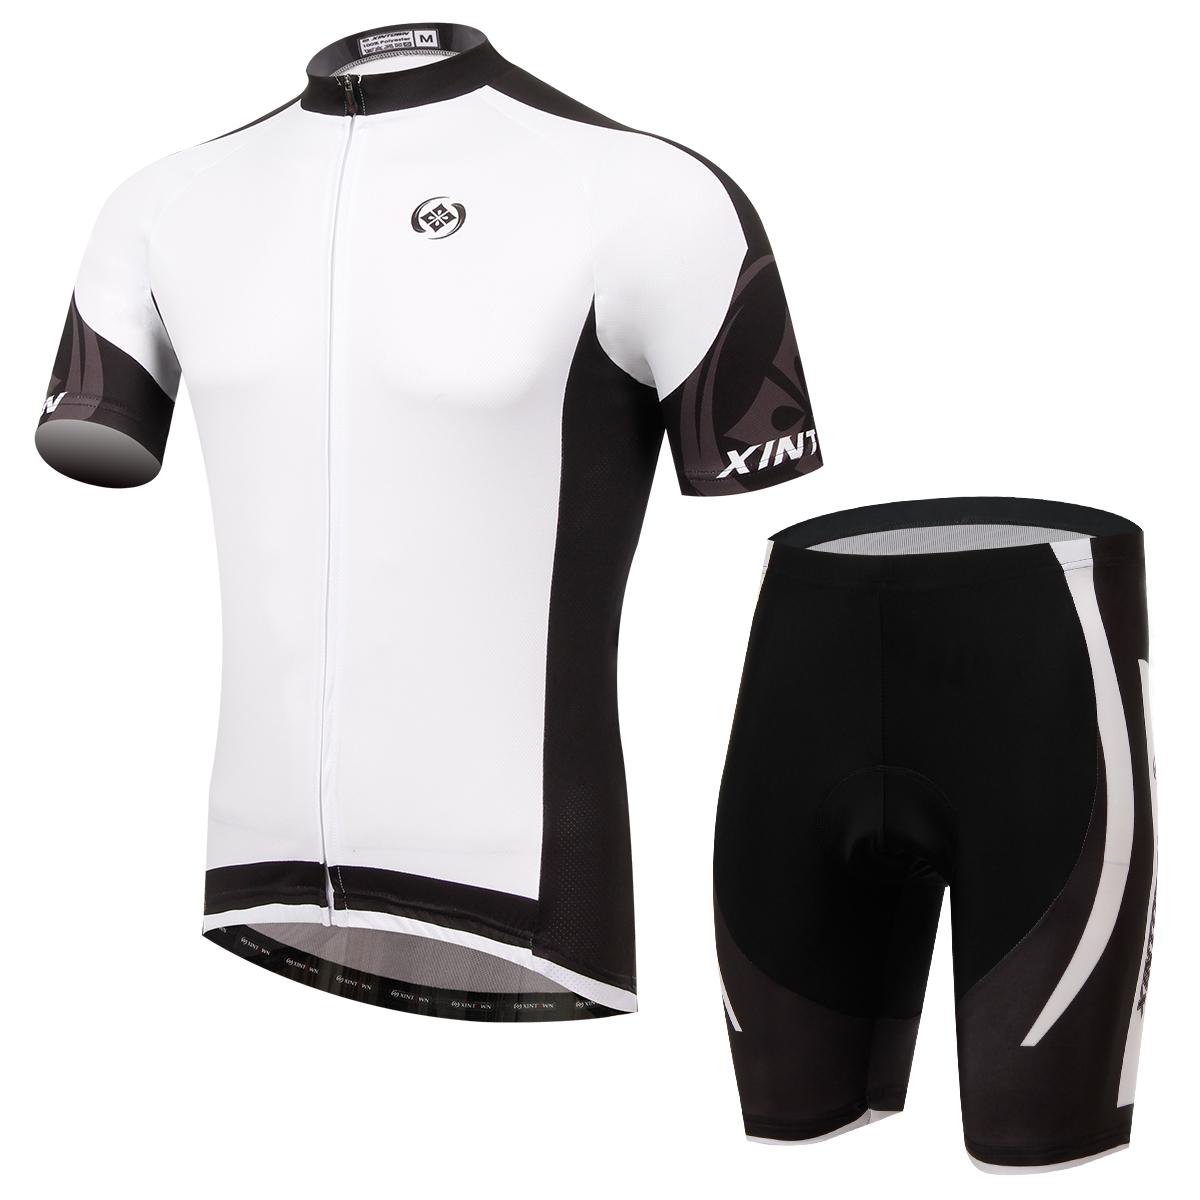 Dimon Men/Women Cycling Set Short Sleeve Jersey and Shorts MTB Suits Roupa Ciclismo 100% Polyester Bike Bicycle Clothing